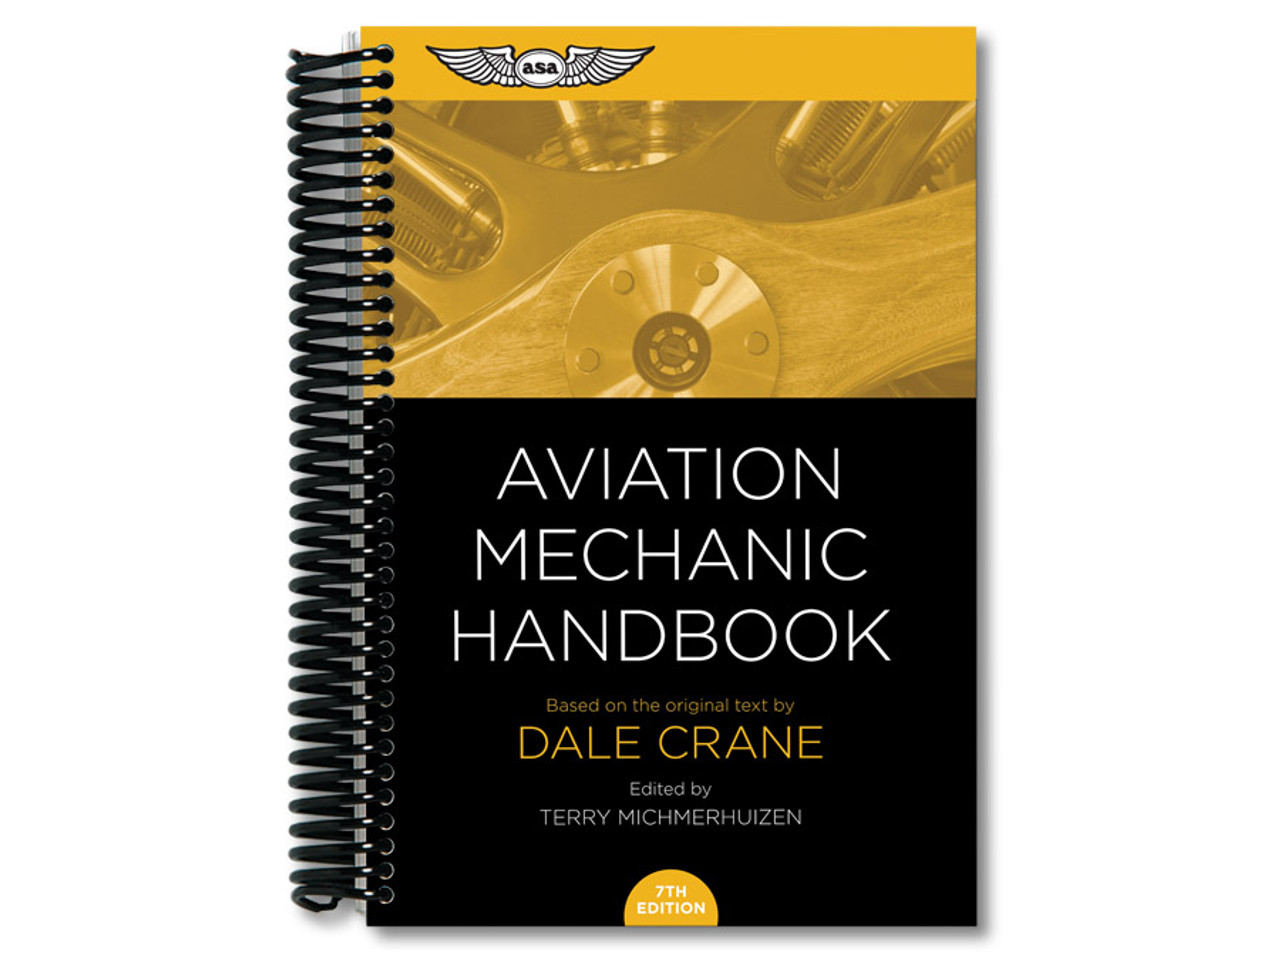 ASA Aviation Mechanic Handbook - 7th Edition